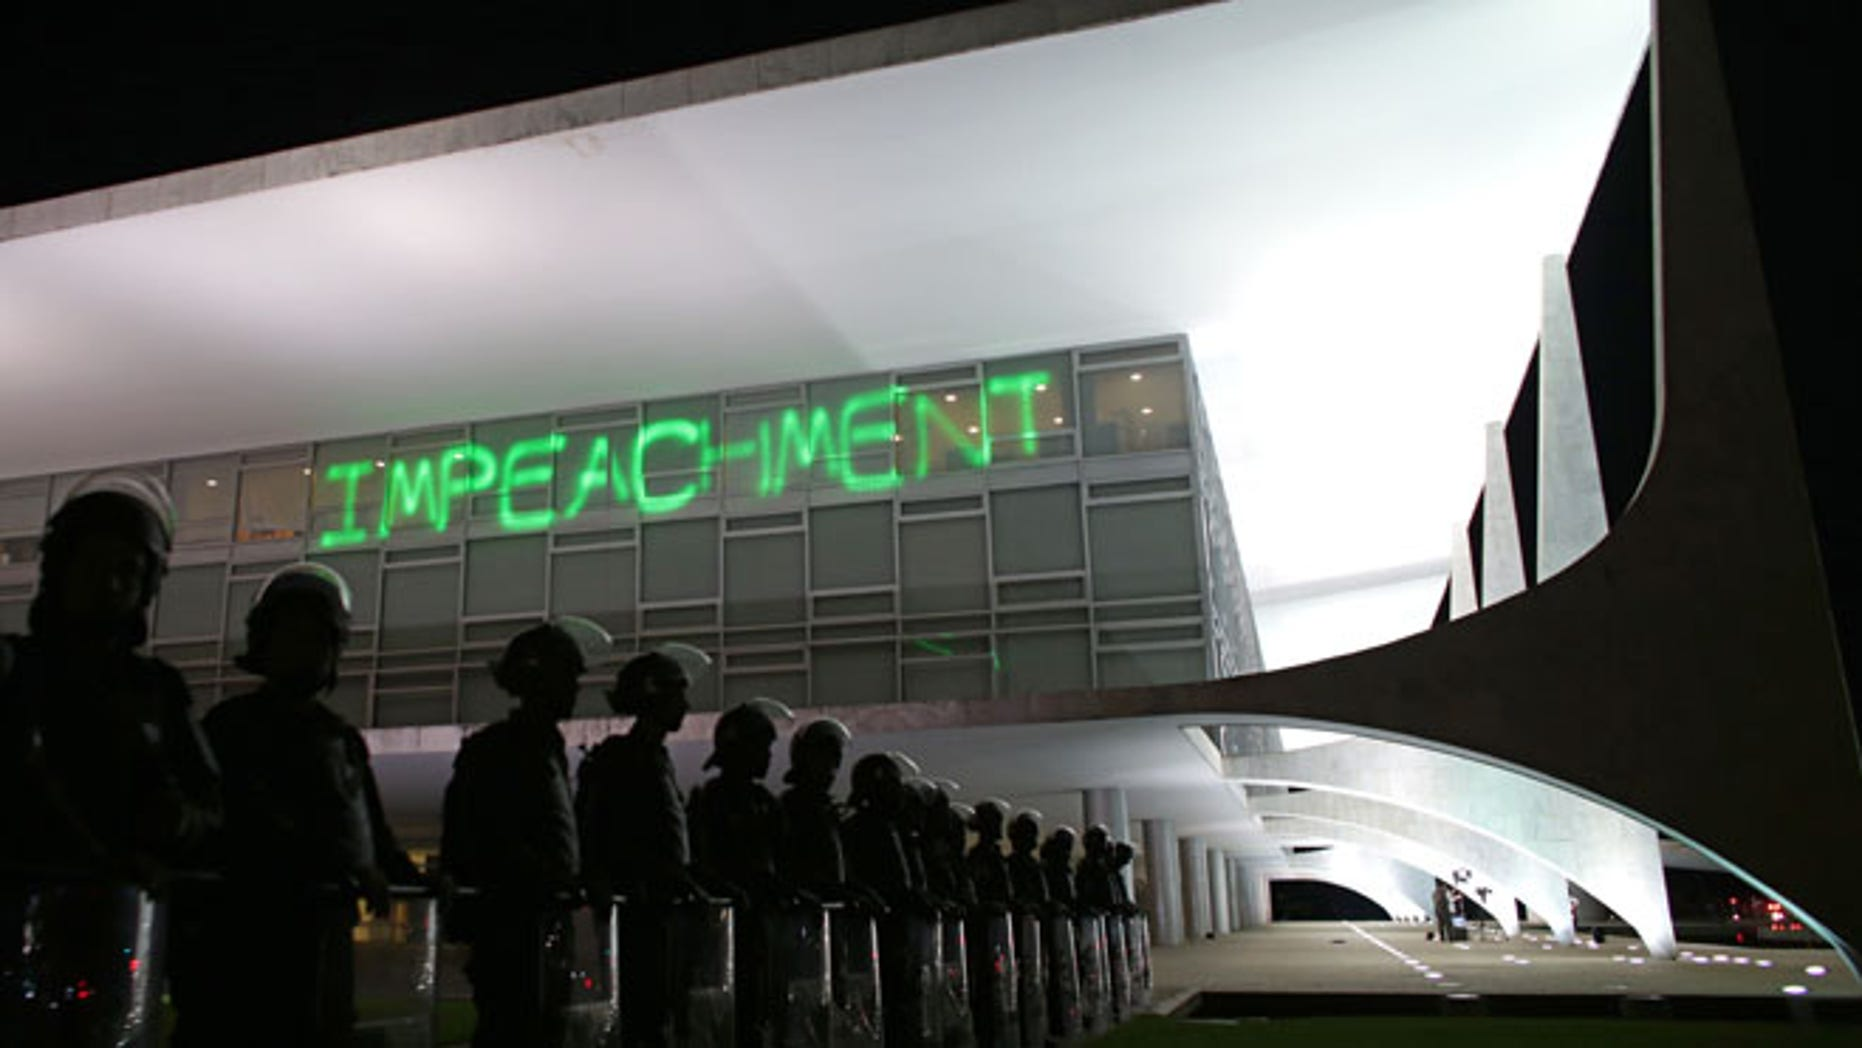 """FILE - In this March 21, 2016 file photo, soldiers stand guard outside Planalto presidential palace where protesters projected the word """"Impeachment"""" on the building, as they call for the impeachment of Brazil's President Dilma Rousseff in Brasilia, Brazil. On Thursday, the Senate will begin the final phase of Rousseff's trial for allegedly breaking fiscal rules in her management of the federal budget. Several days of deliberations, including an address by Rousseff herself, will culminate in a final vote early next week. (AP Photo/Eraldo Peres, File)"""